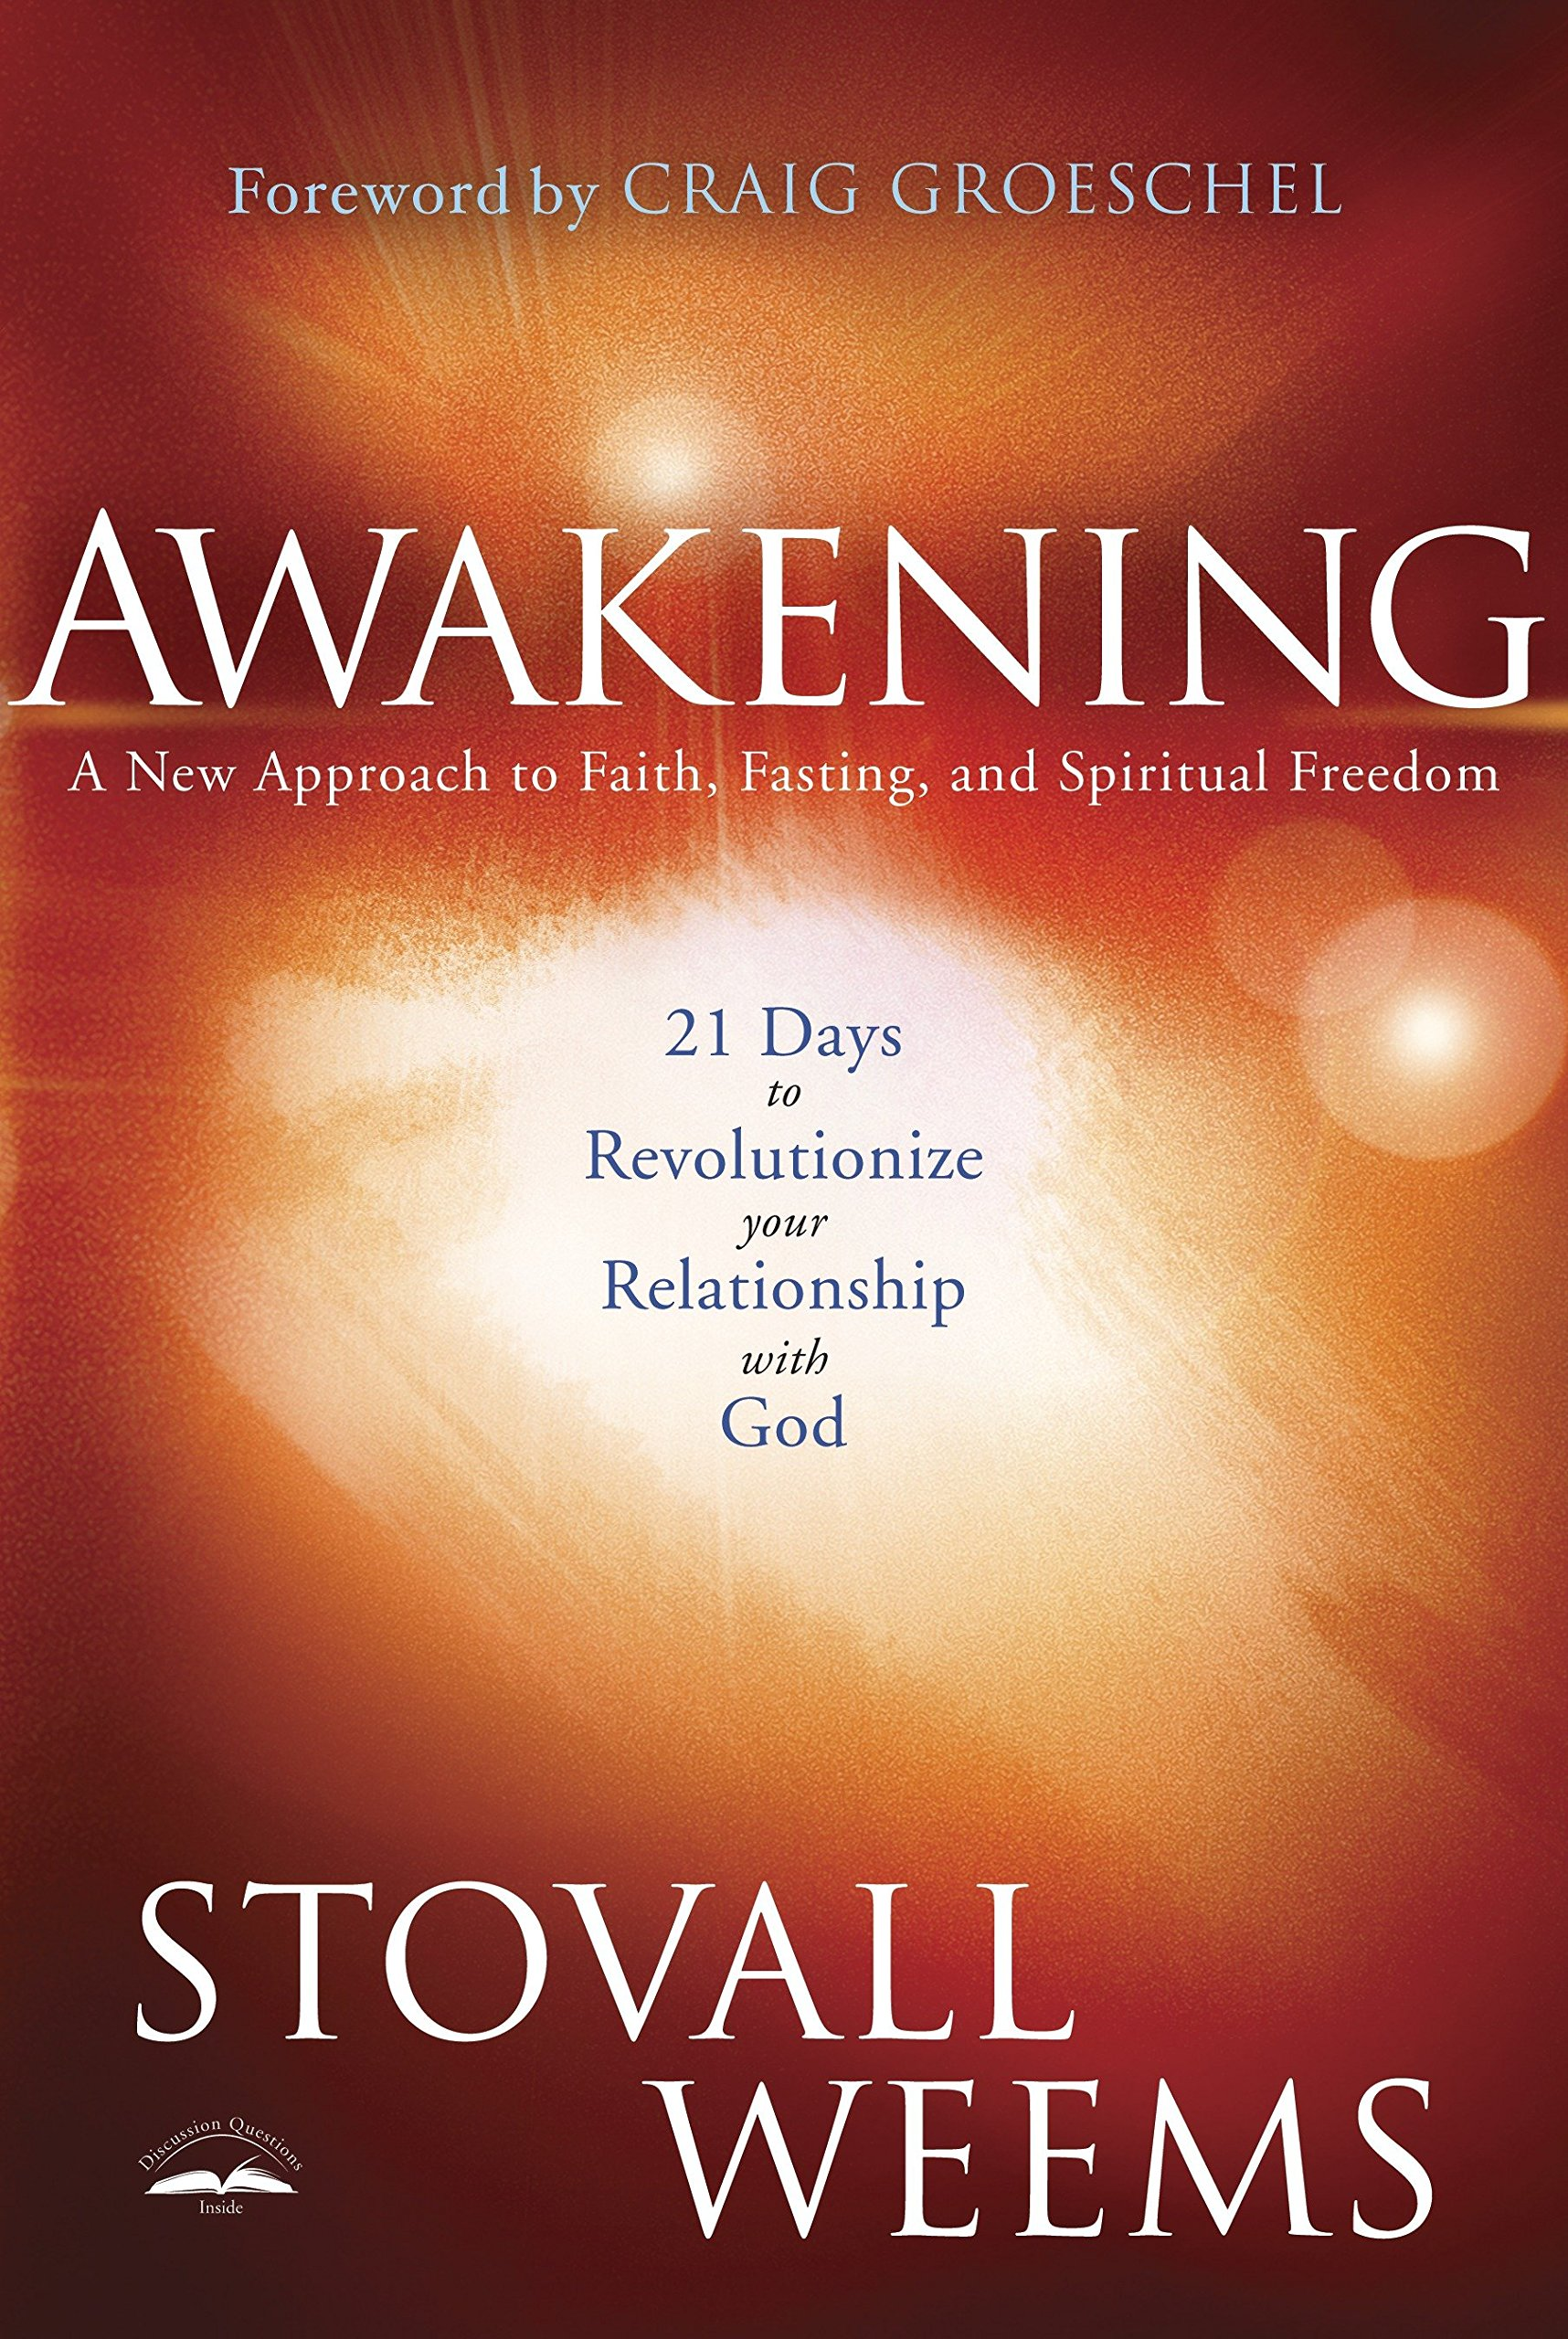 Awakening: A New Approach to Faith, Fasting, and Spiritual Freedom: Stovall  Weems, Craig Groeschel: 9780307459534: Amazon.com: Books